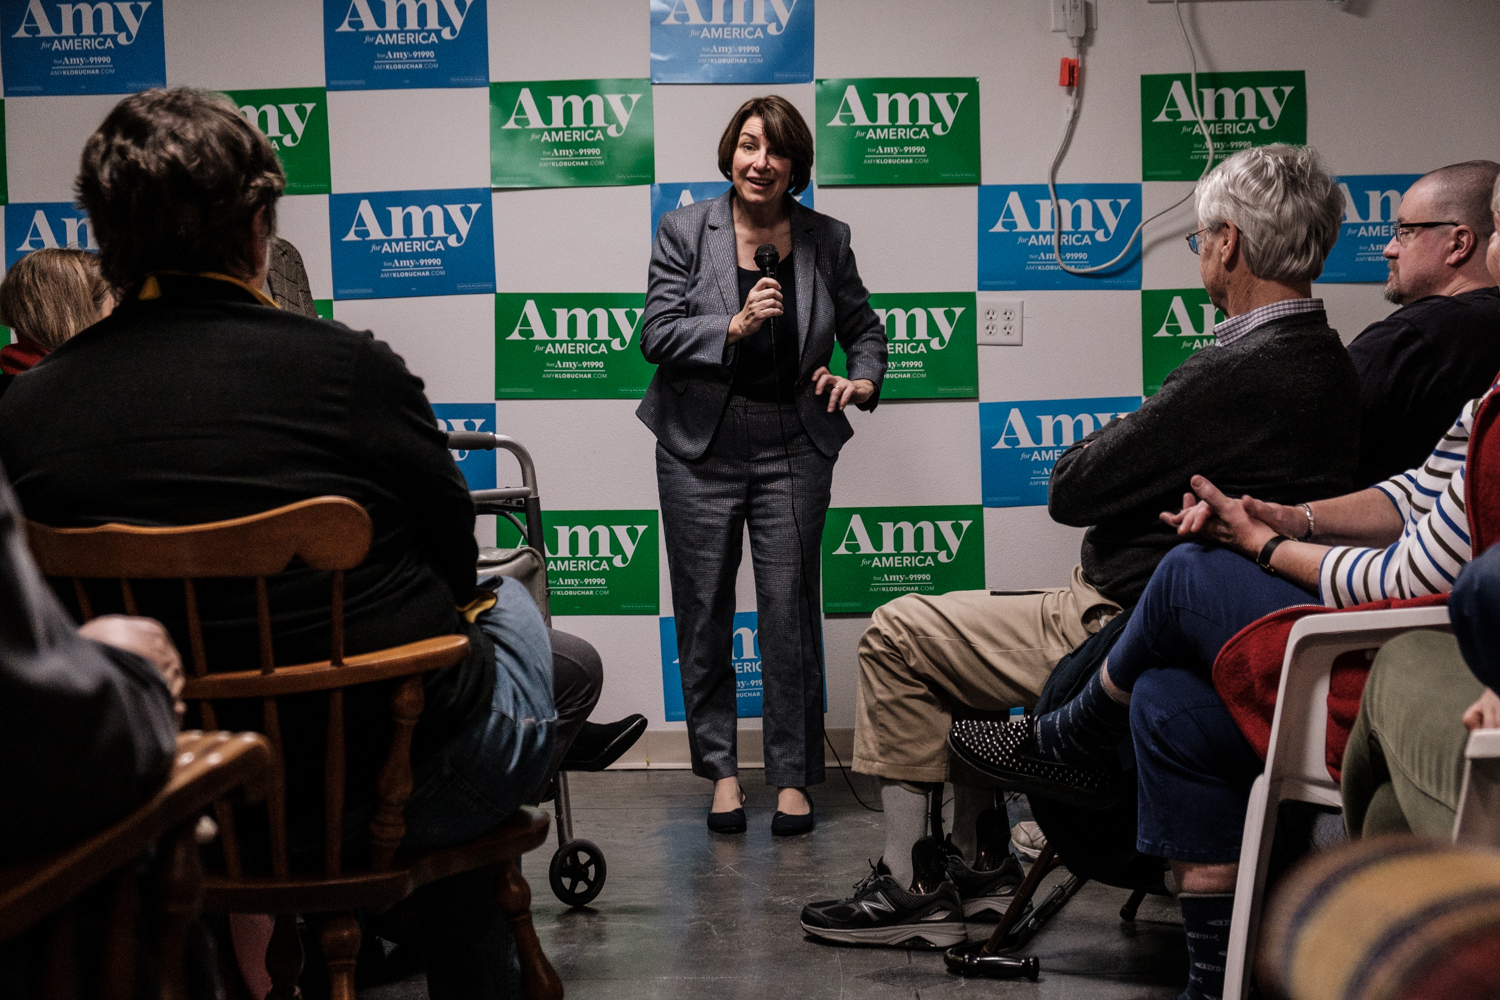 Senator Amy Klobuchar, D-Minn. speaks during an office opening event in Iowa City on Saturday, December 28, 2019. Senator Klobuchar spoke to an audience of around 200 people.